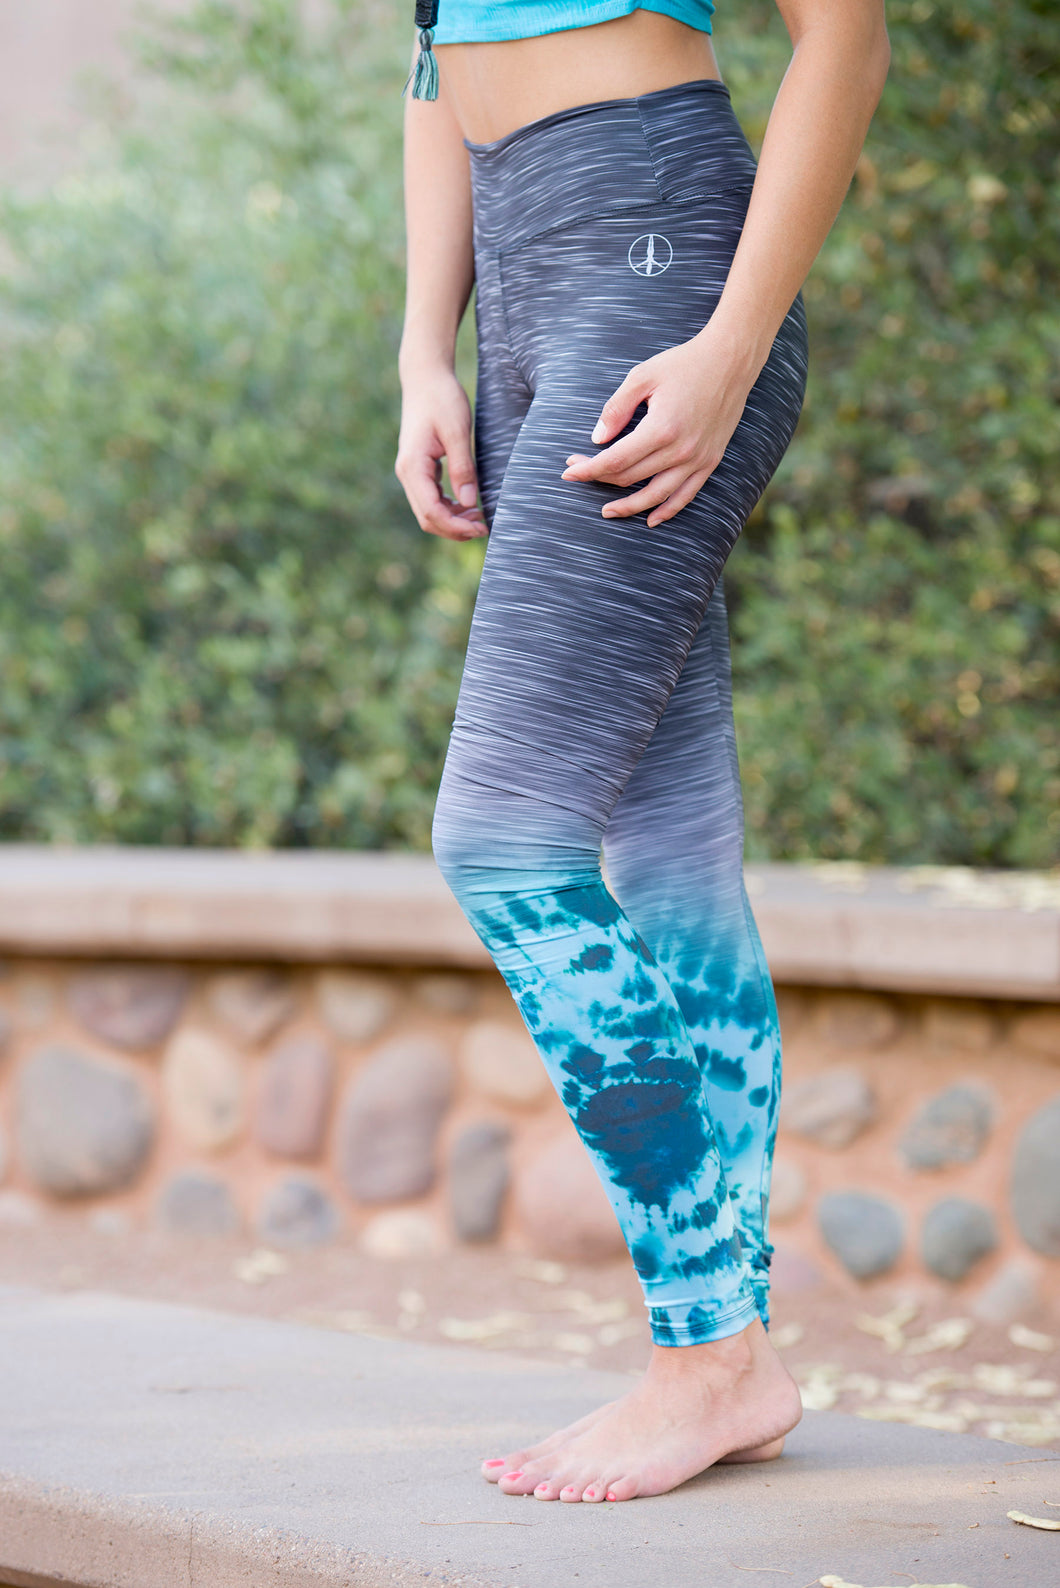 STRIATED TURQUOISE TIE DYE TIGHTS